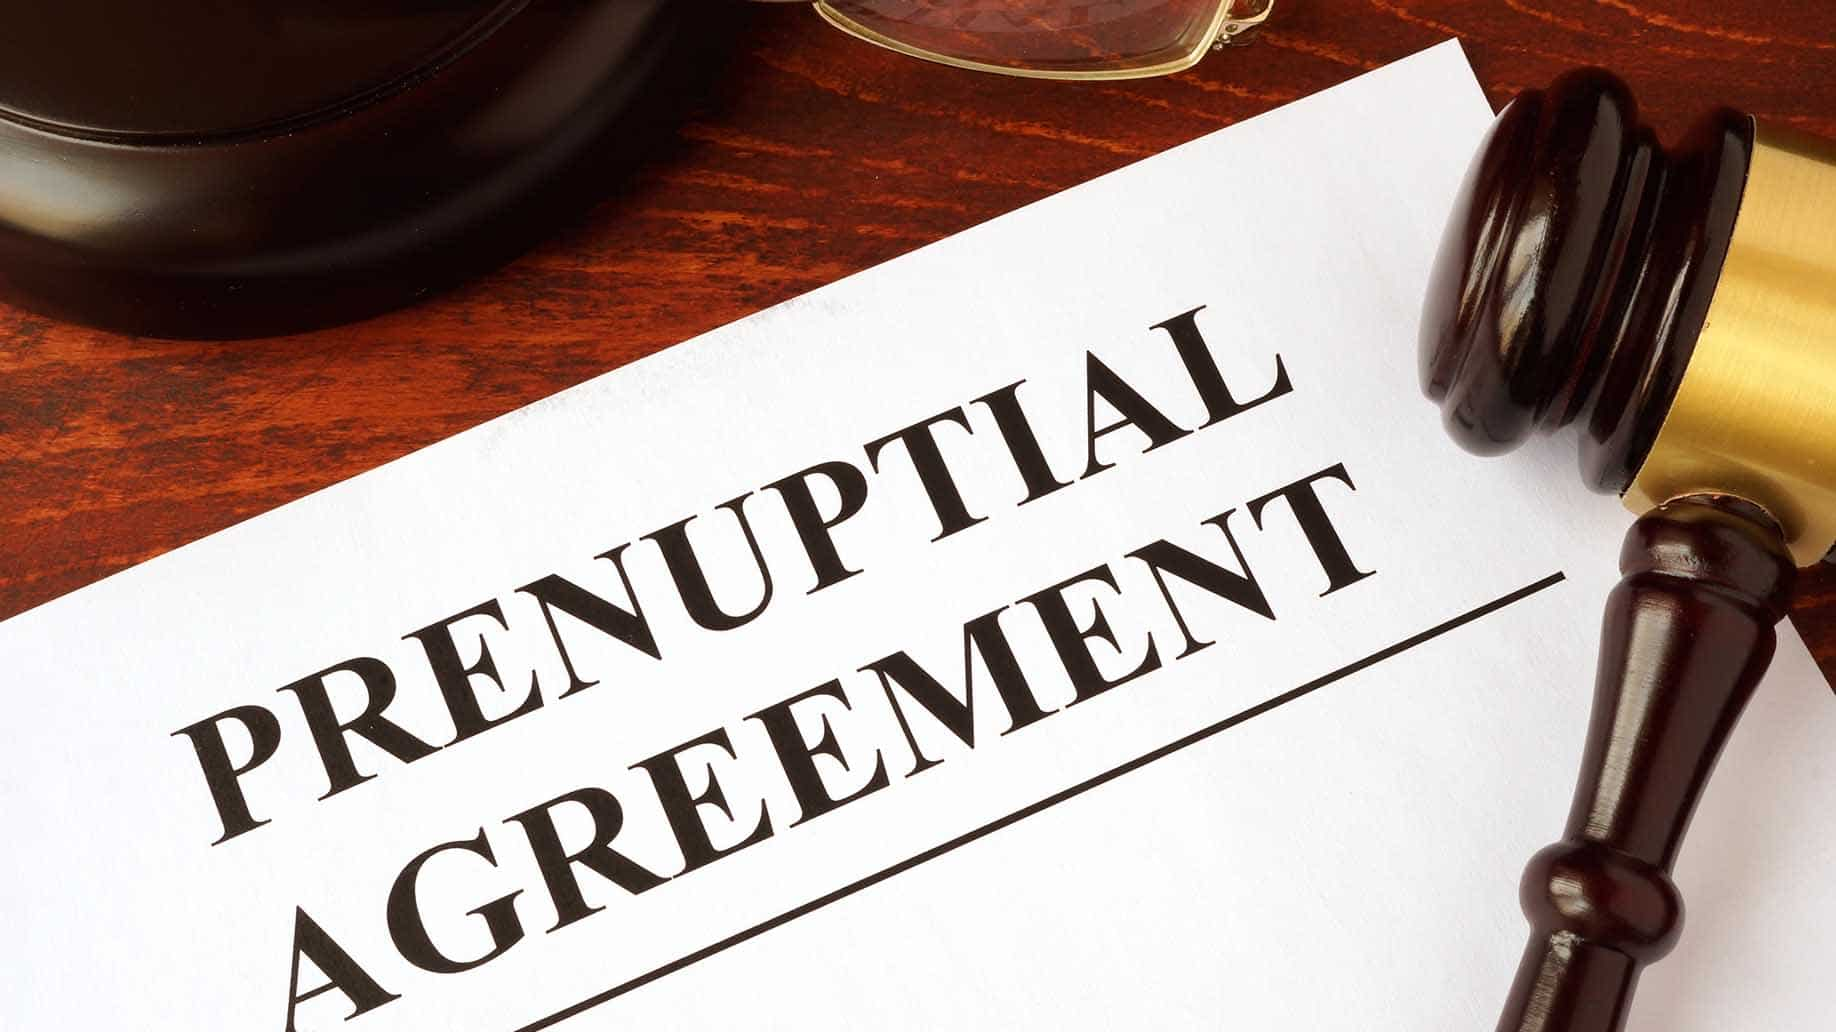 prenuptial agreement documents on a table